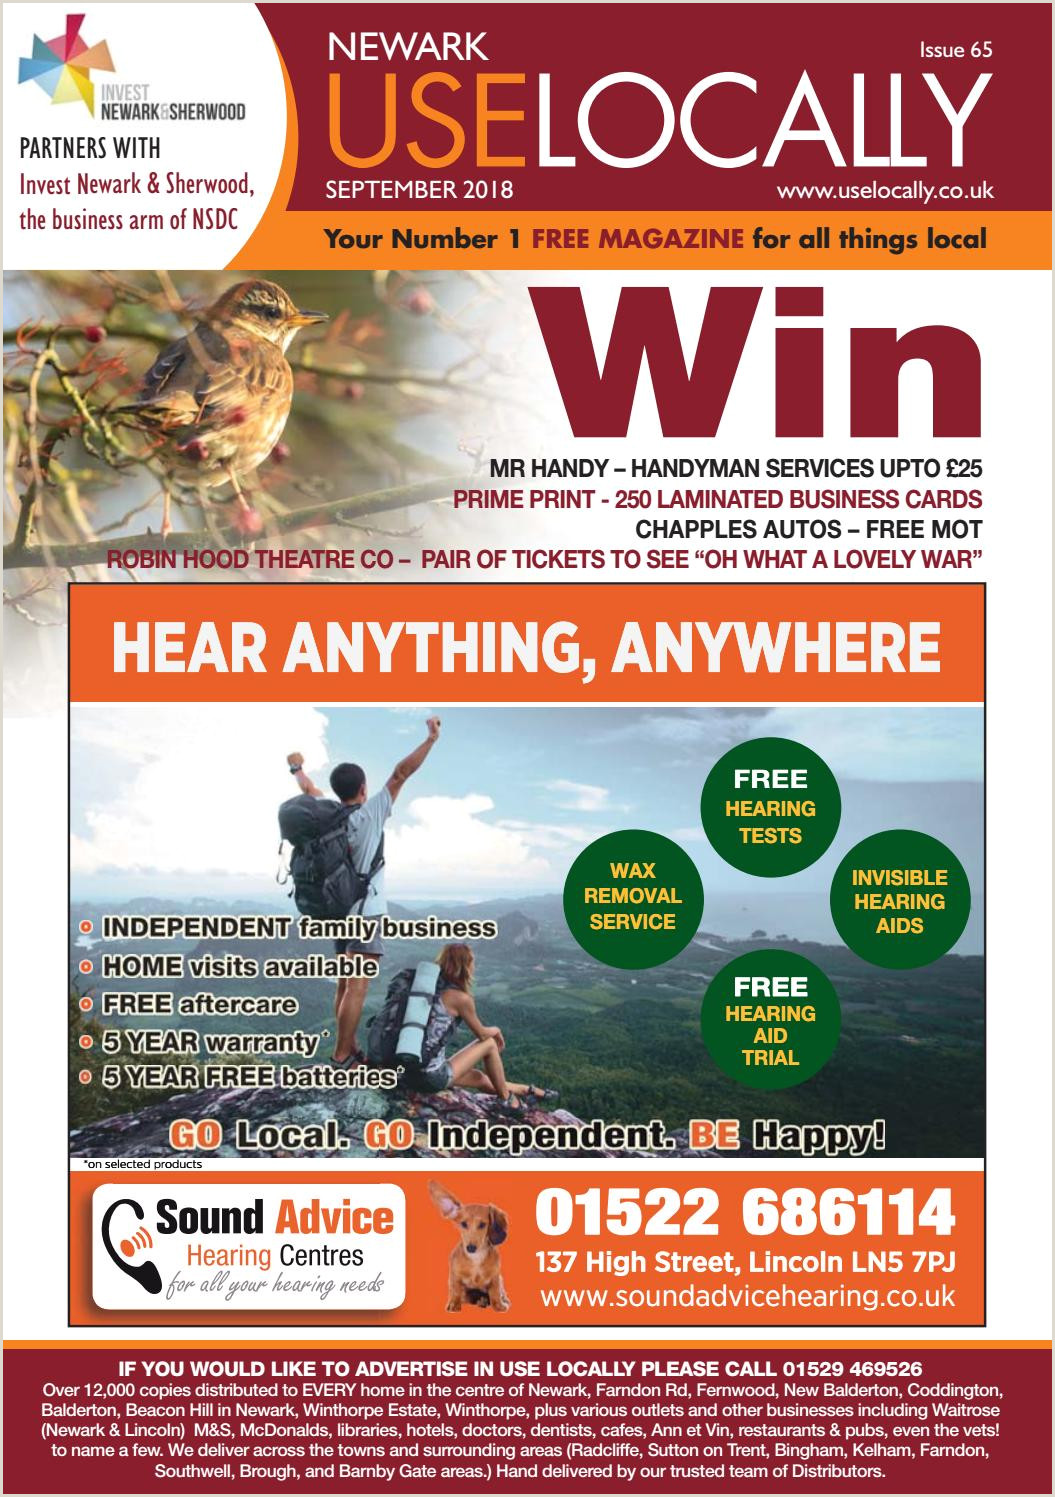 Usiness Cards Newarks September 2018 Issue Is Out Now By Karol Watson